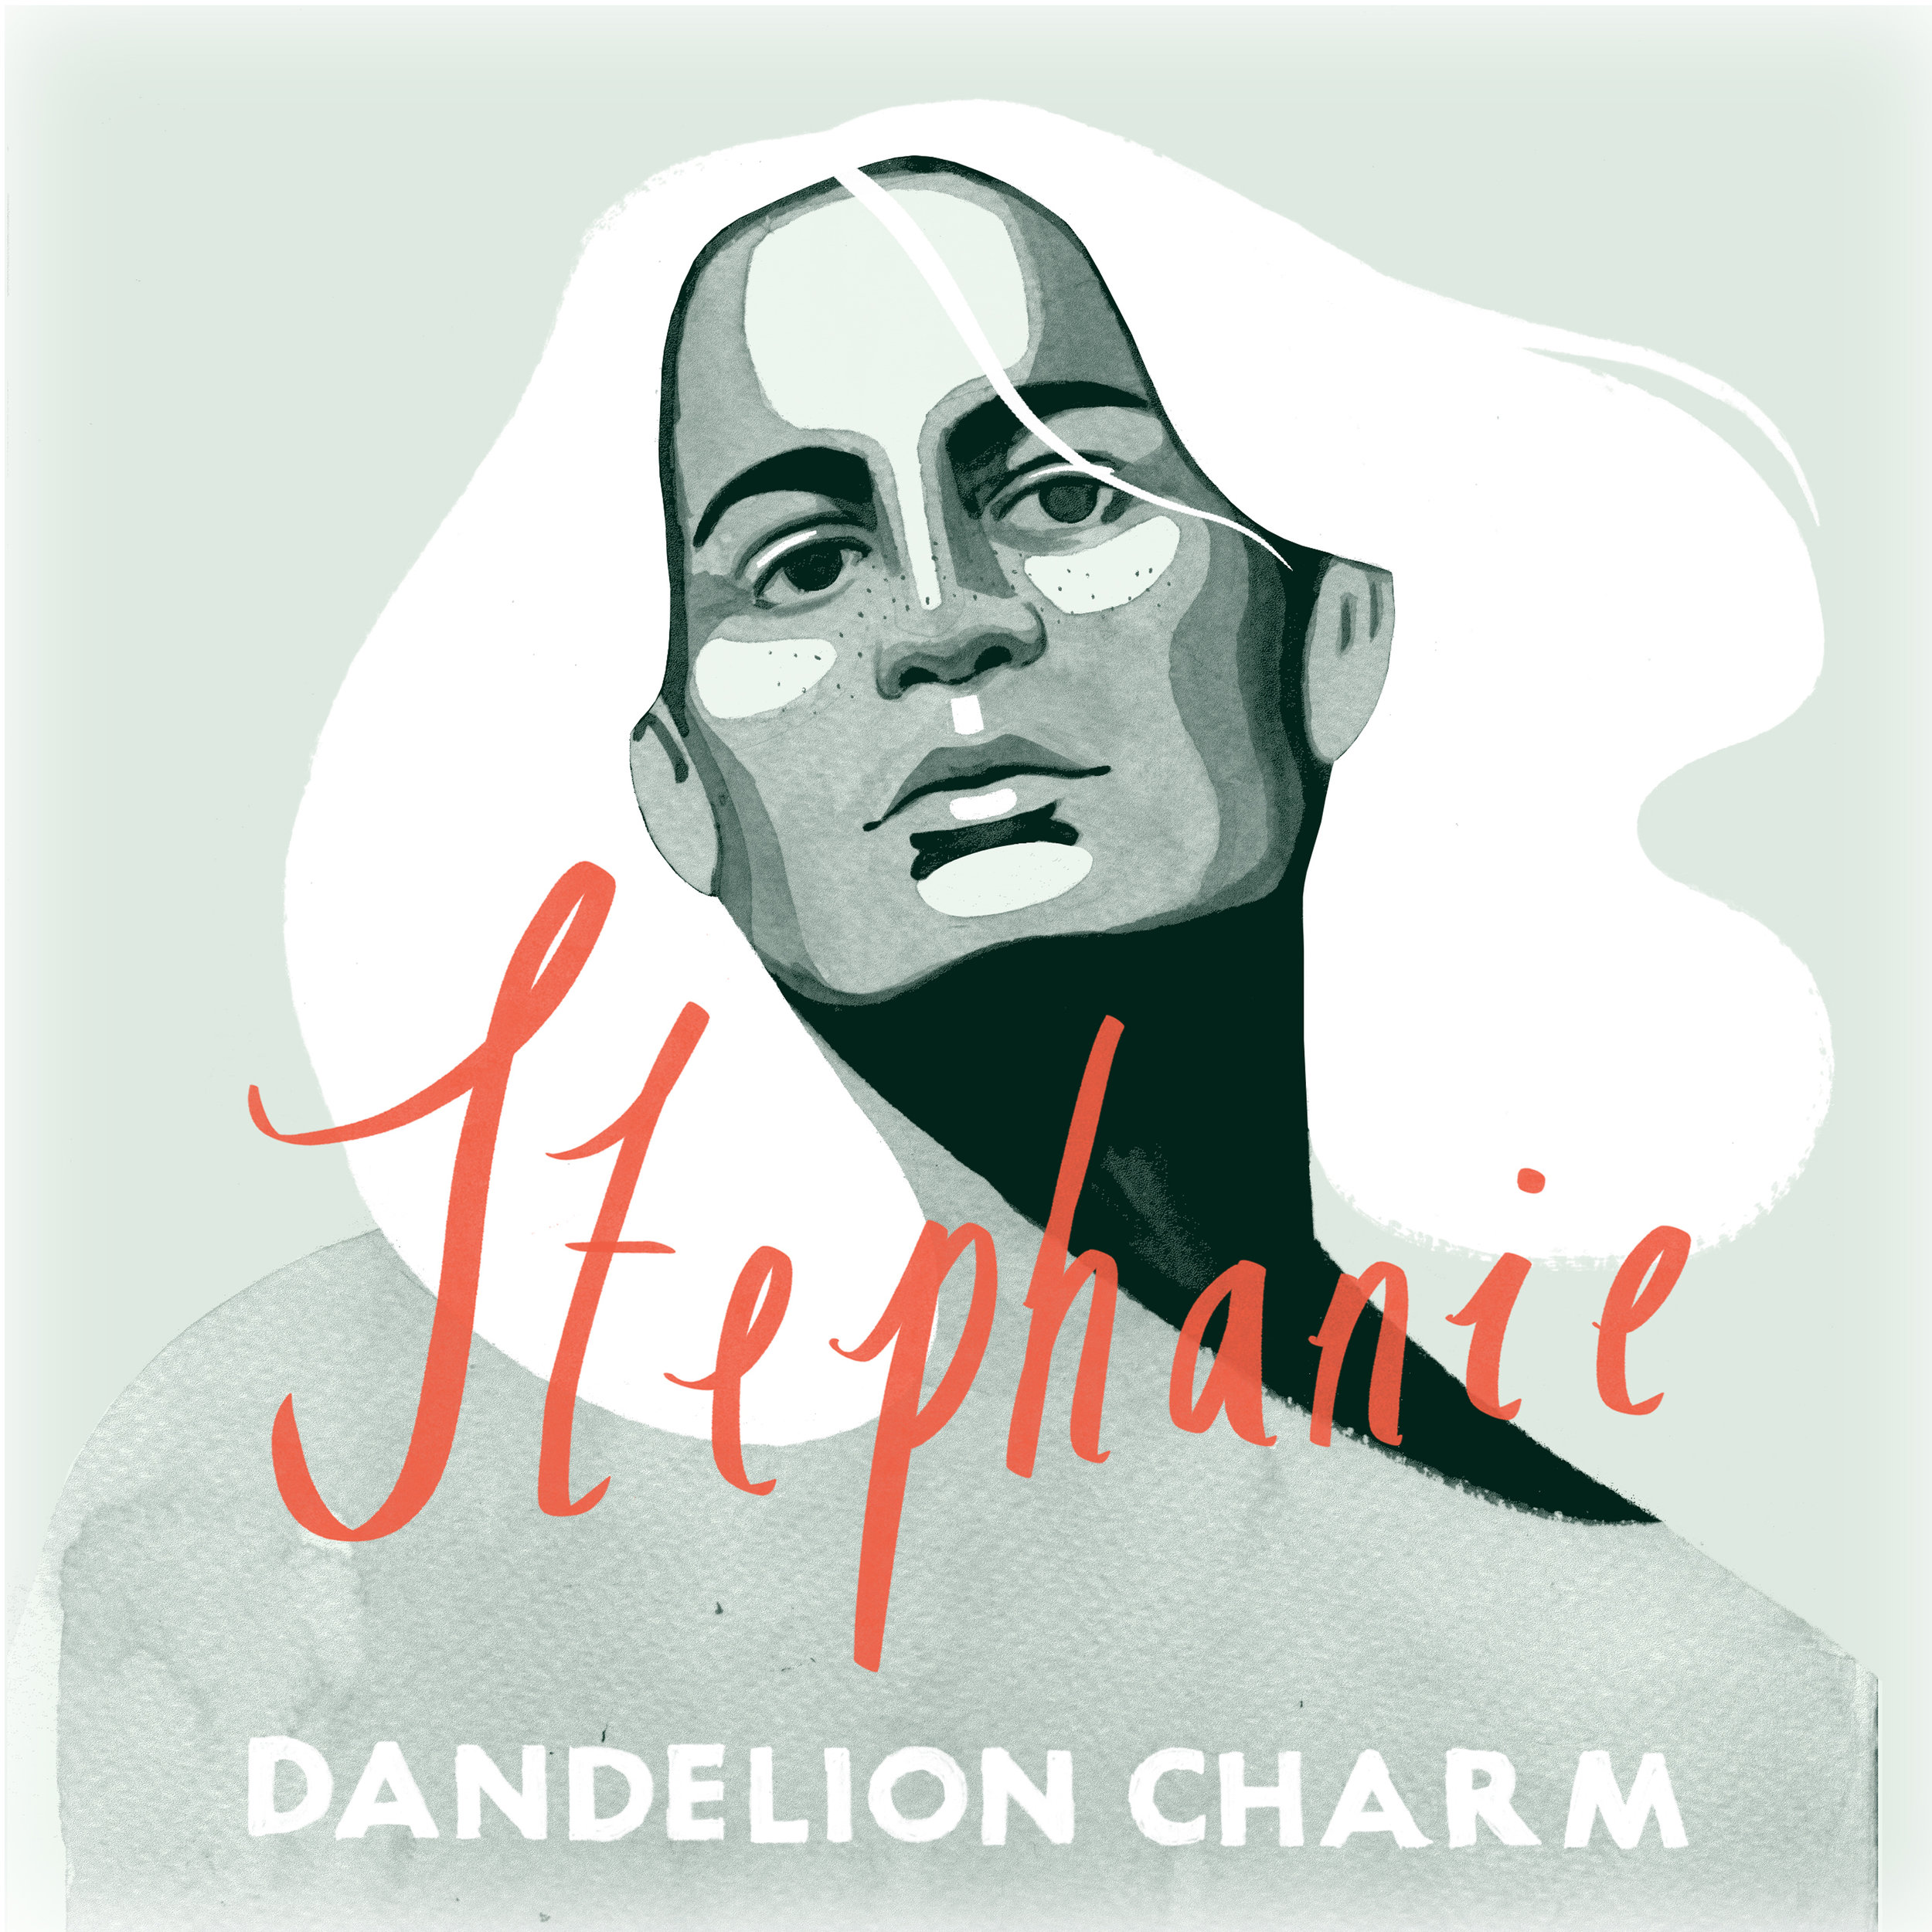 NEW SINGLE  - New single 'Stephanie' available for digital download on the 8th April.